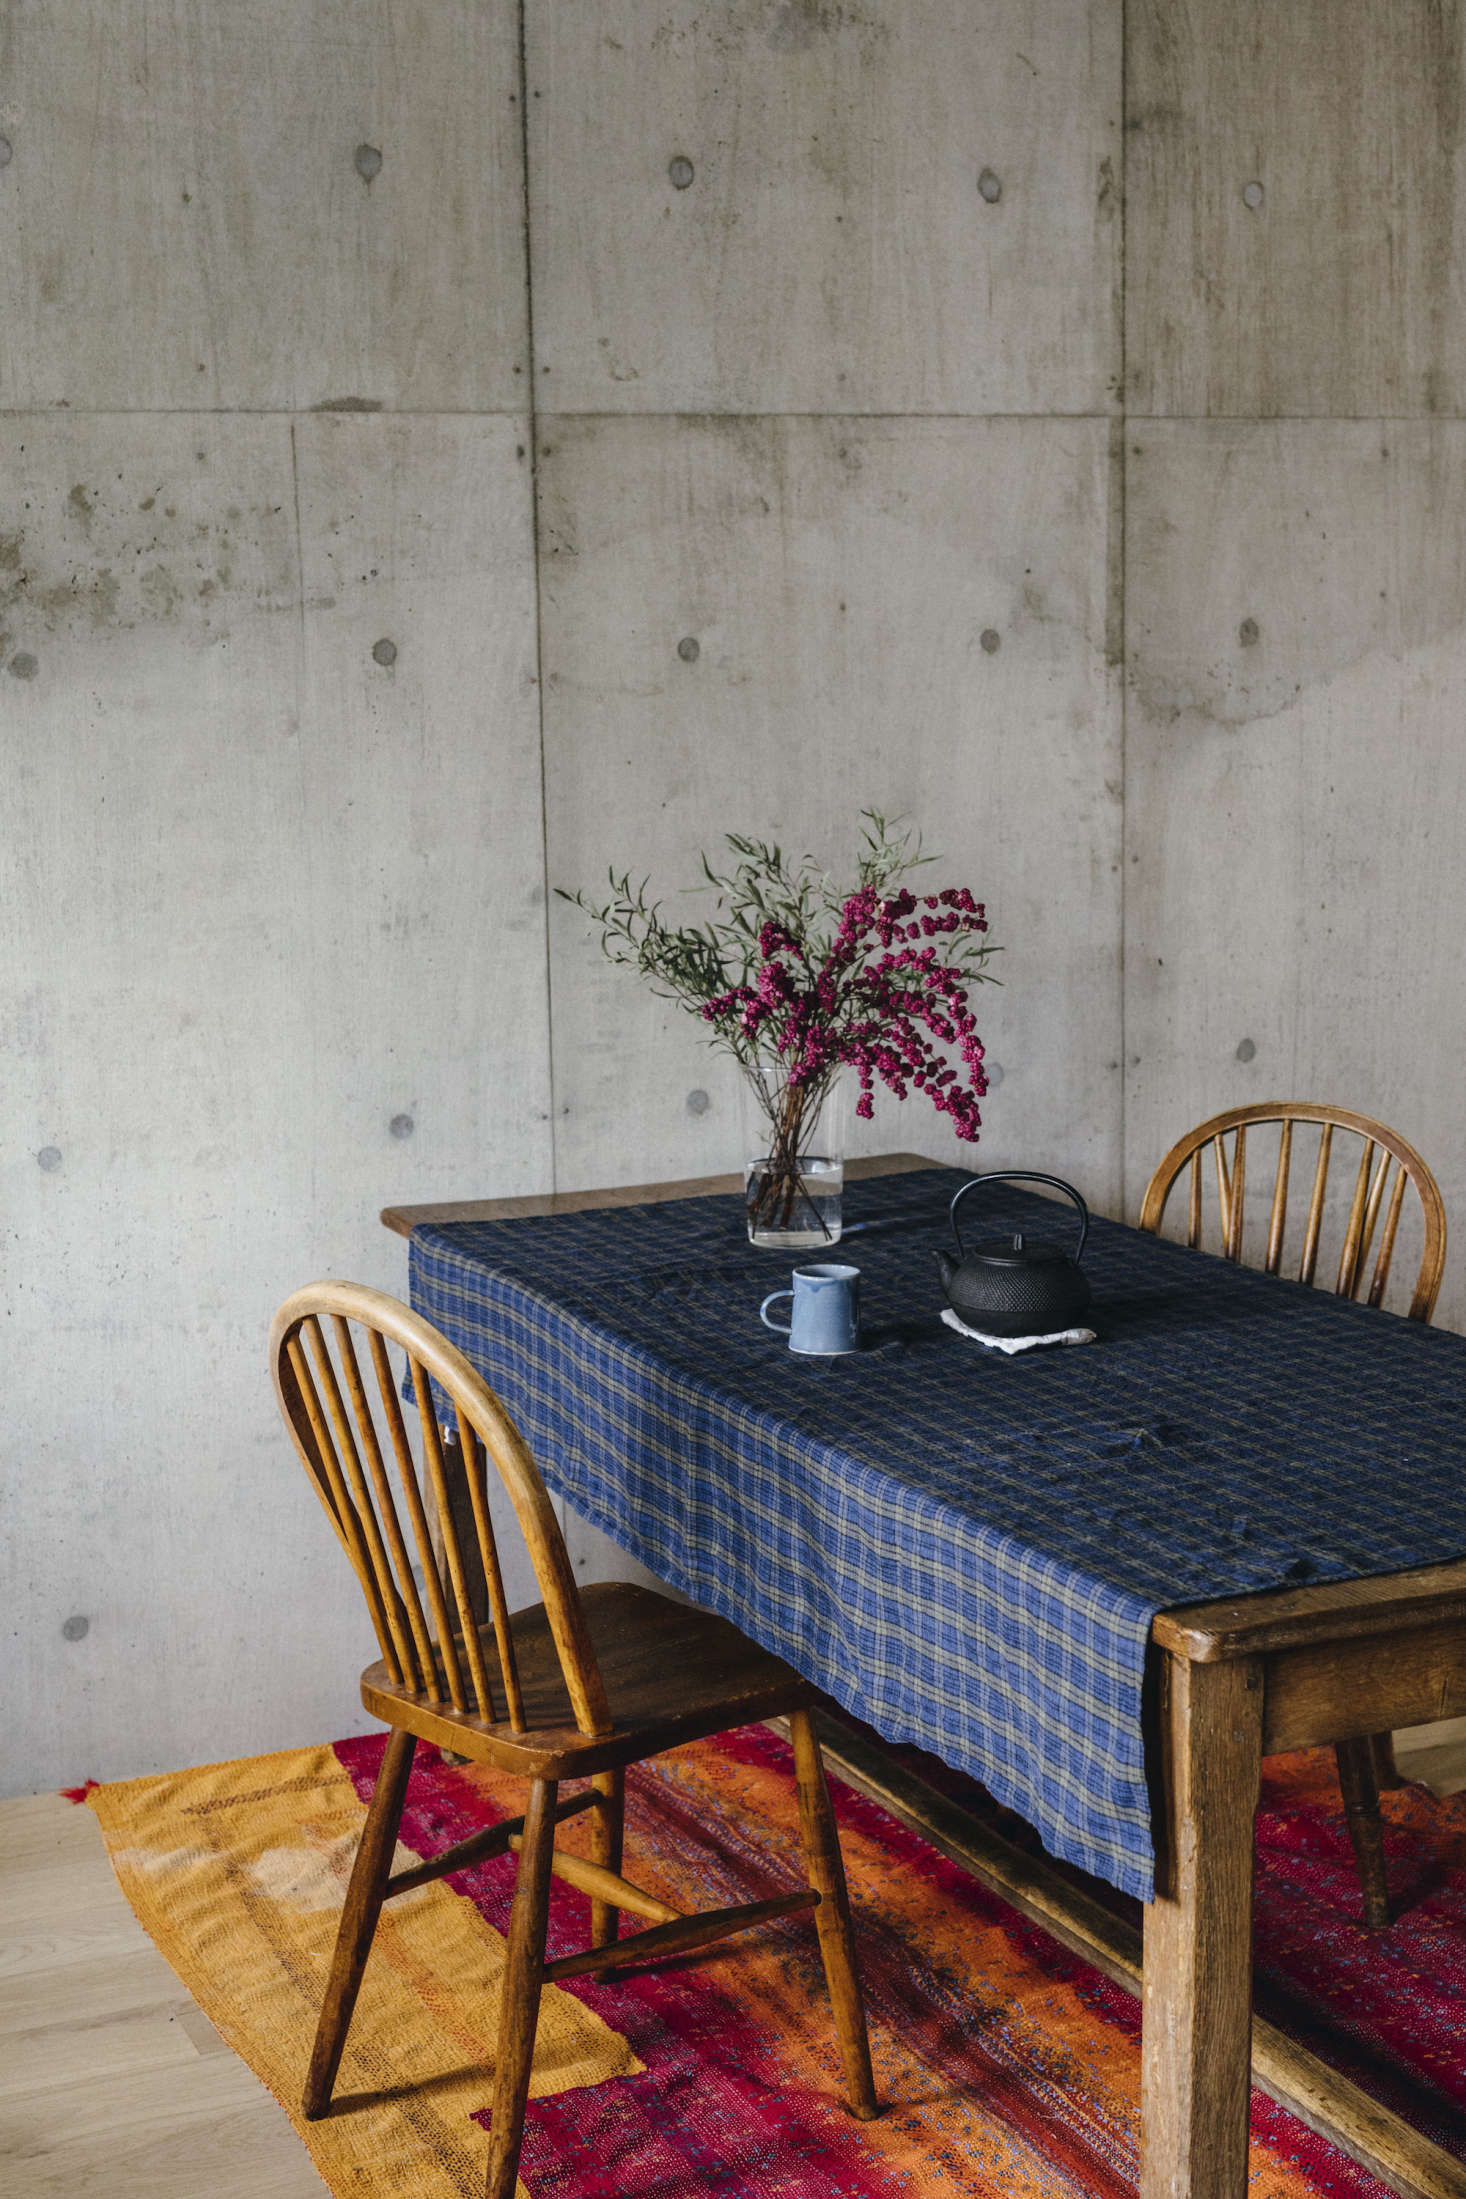 An early trip to Lithuania inspired Yumiko to produce linen for the home; shown here, a table draped in a check patterned cloth of her design in her Tokyo house.